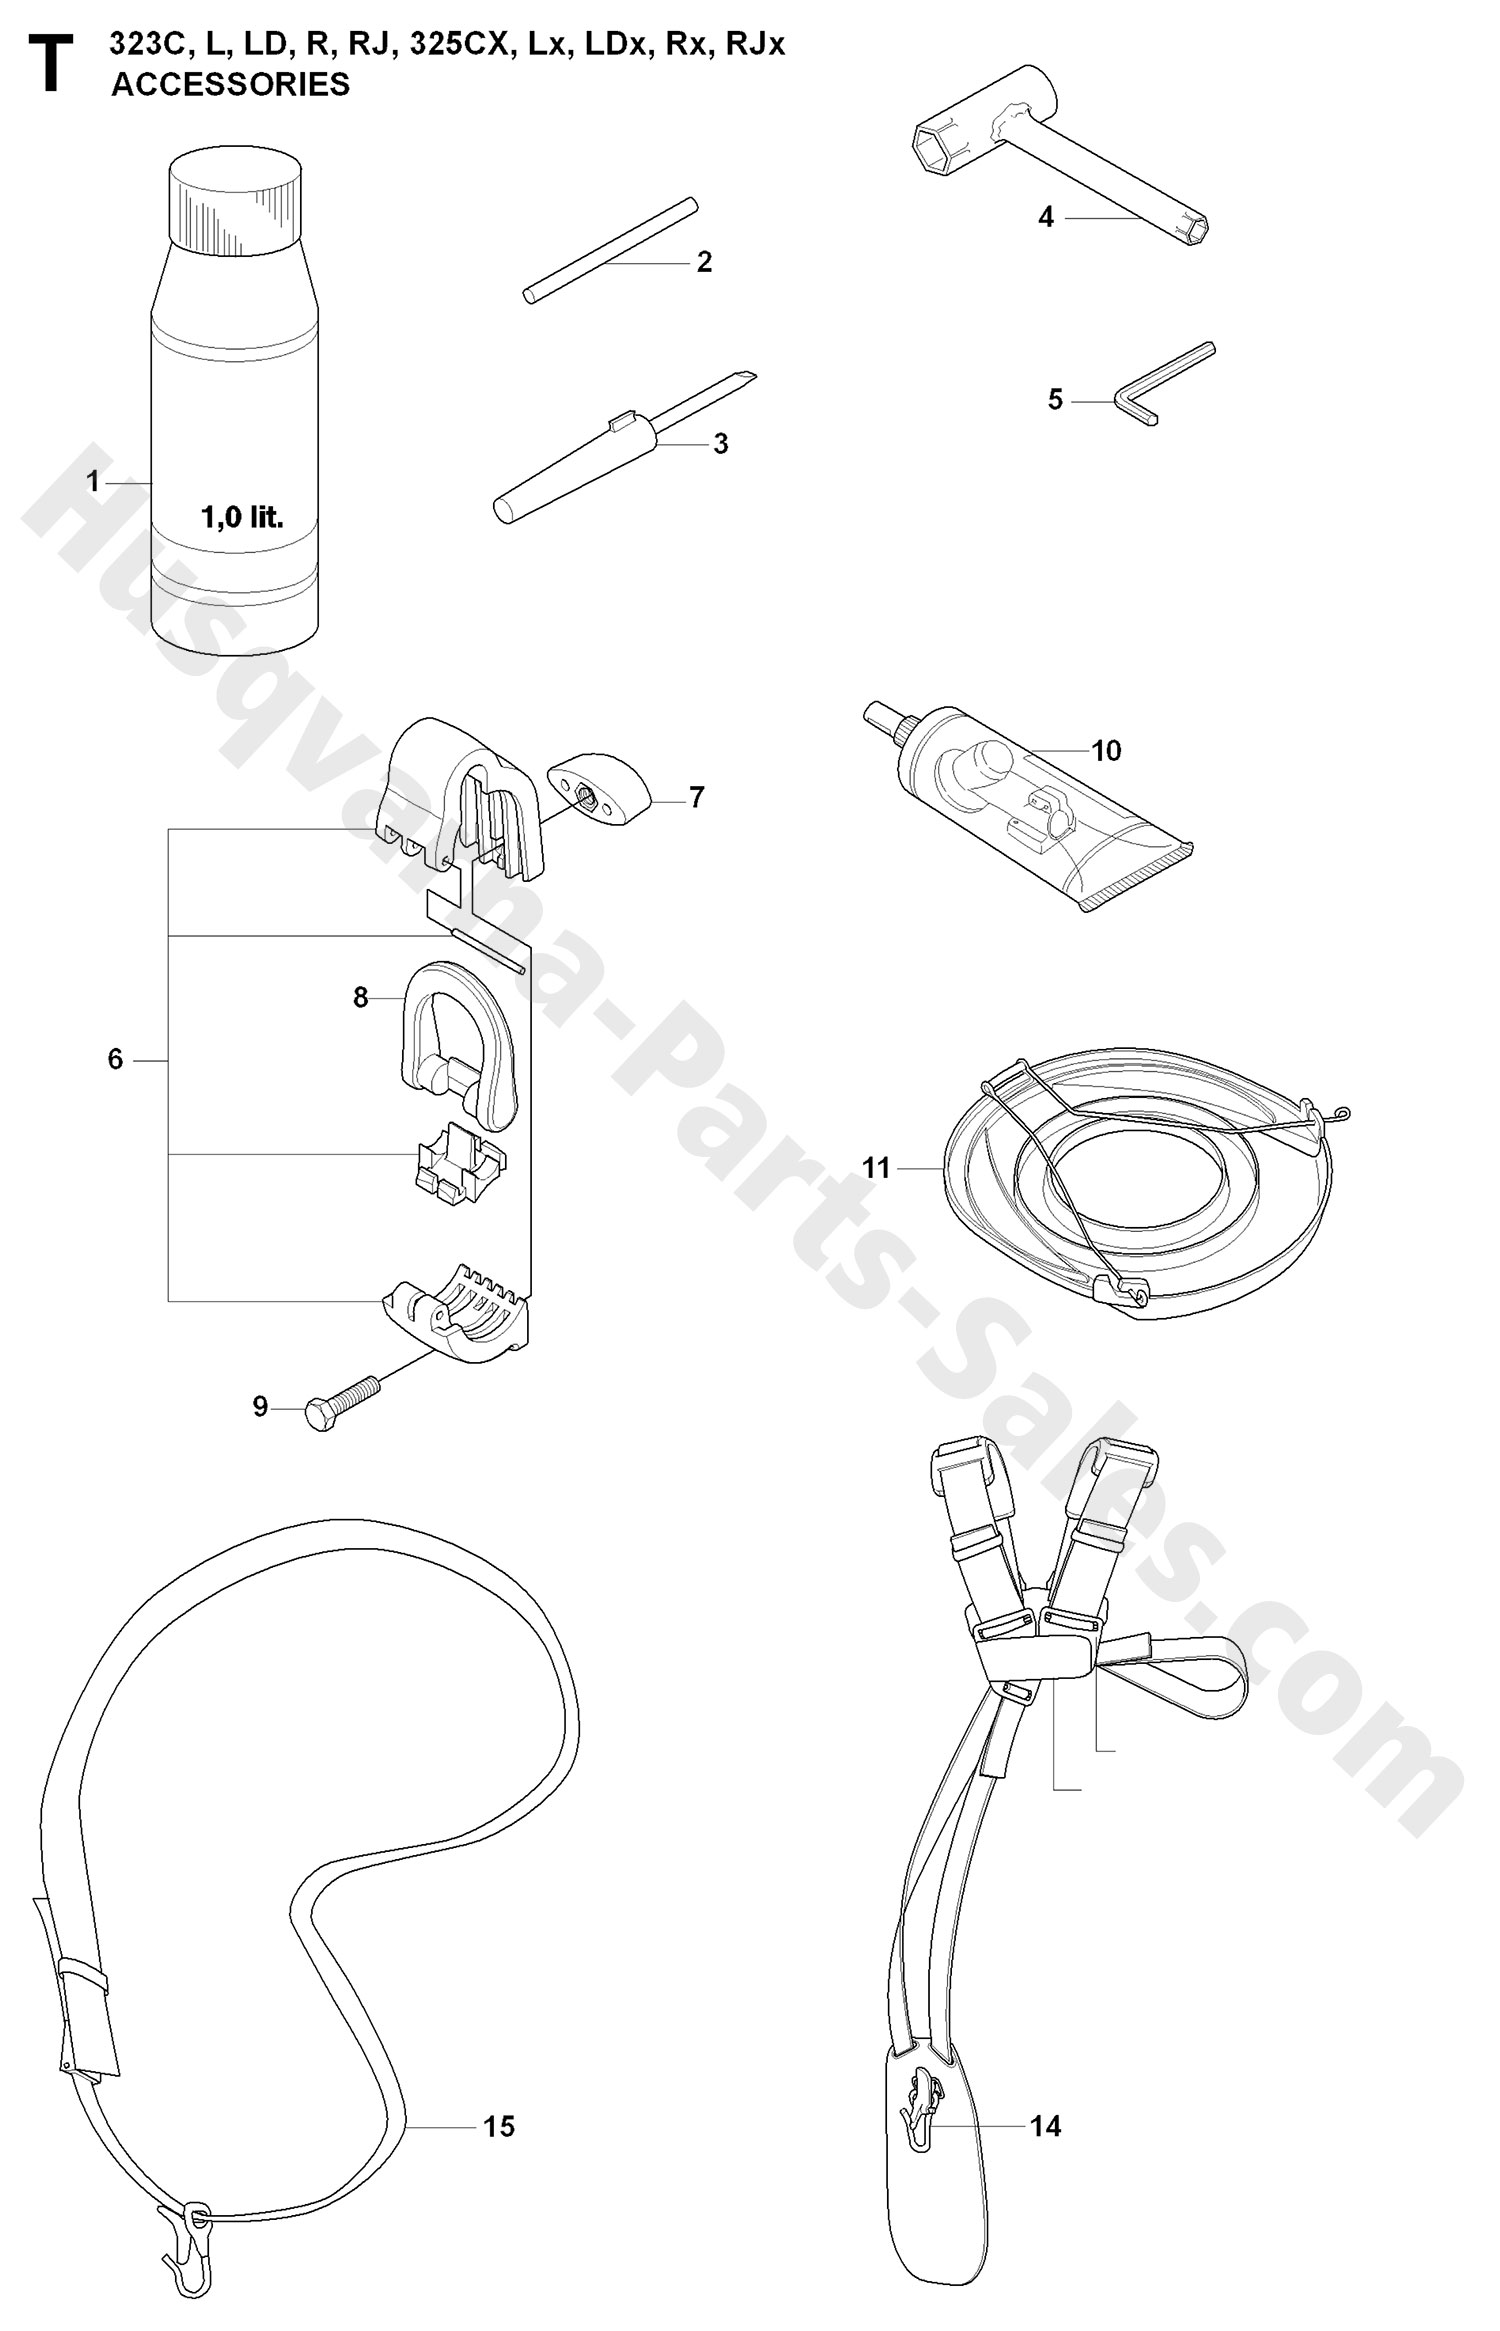 323R Husqvarna Brushcutter Accessories